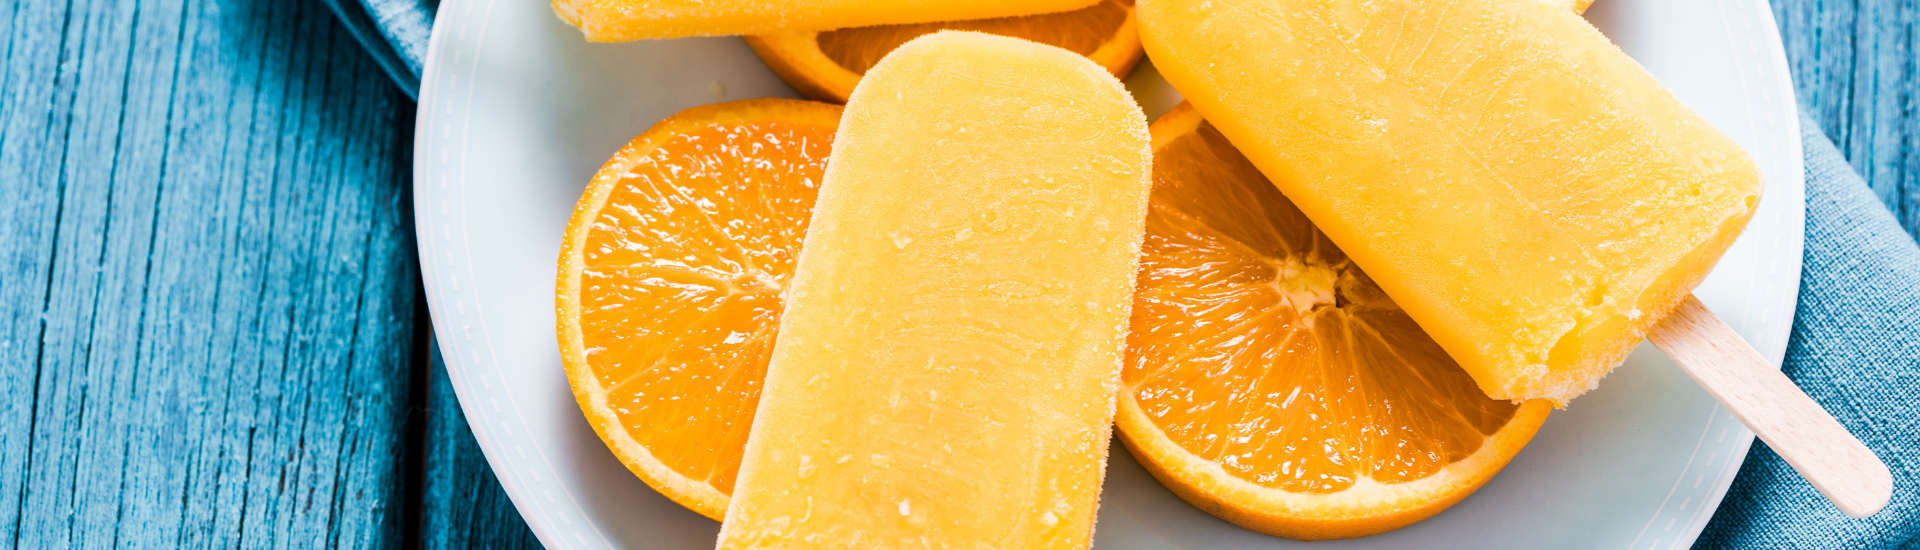 Orange slices and popsicles in a white plate on a blue wood table